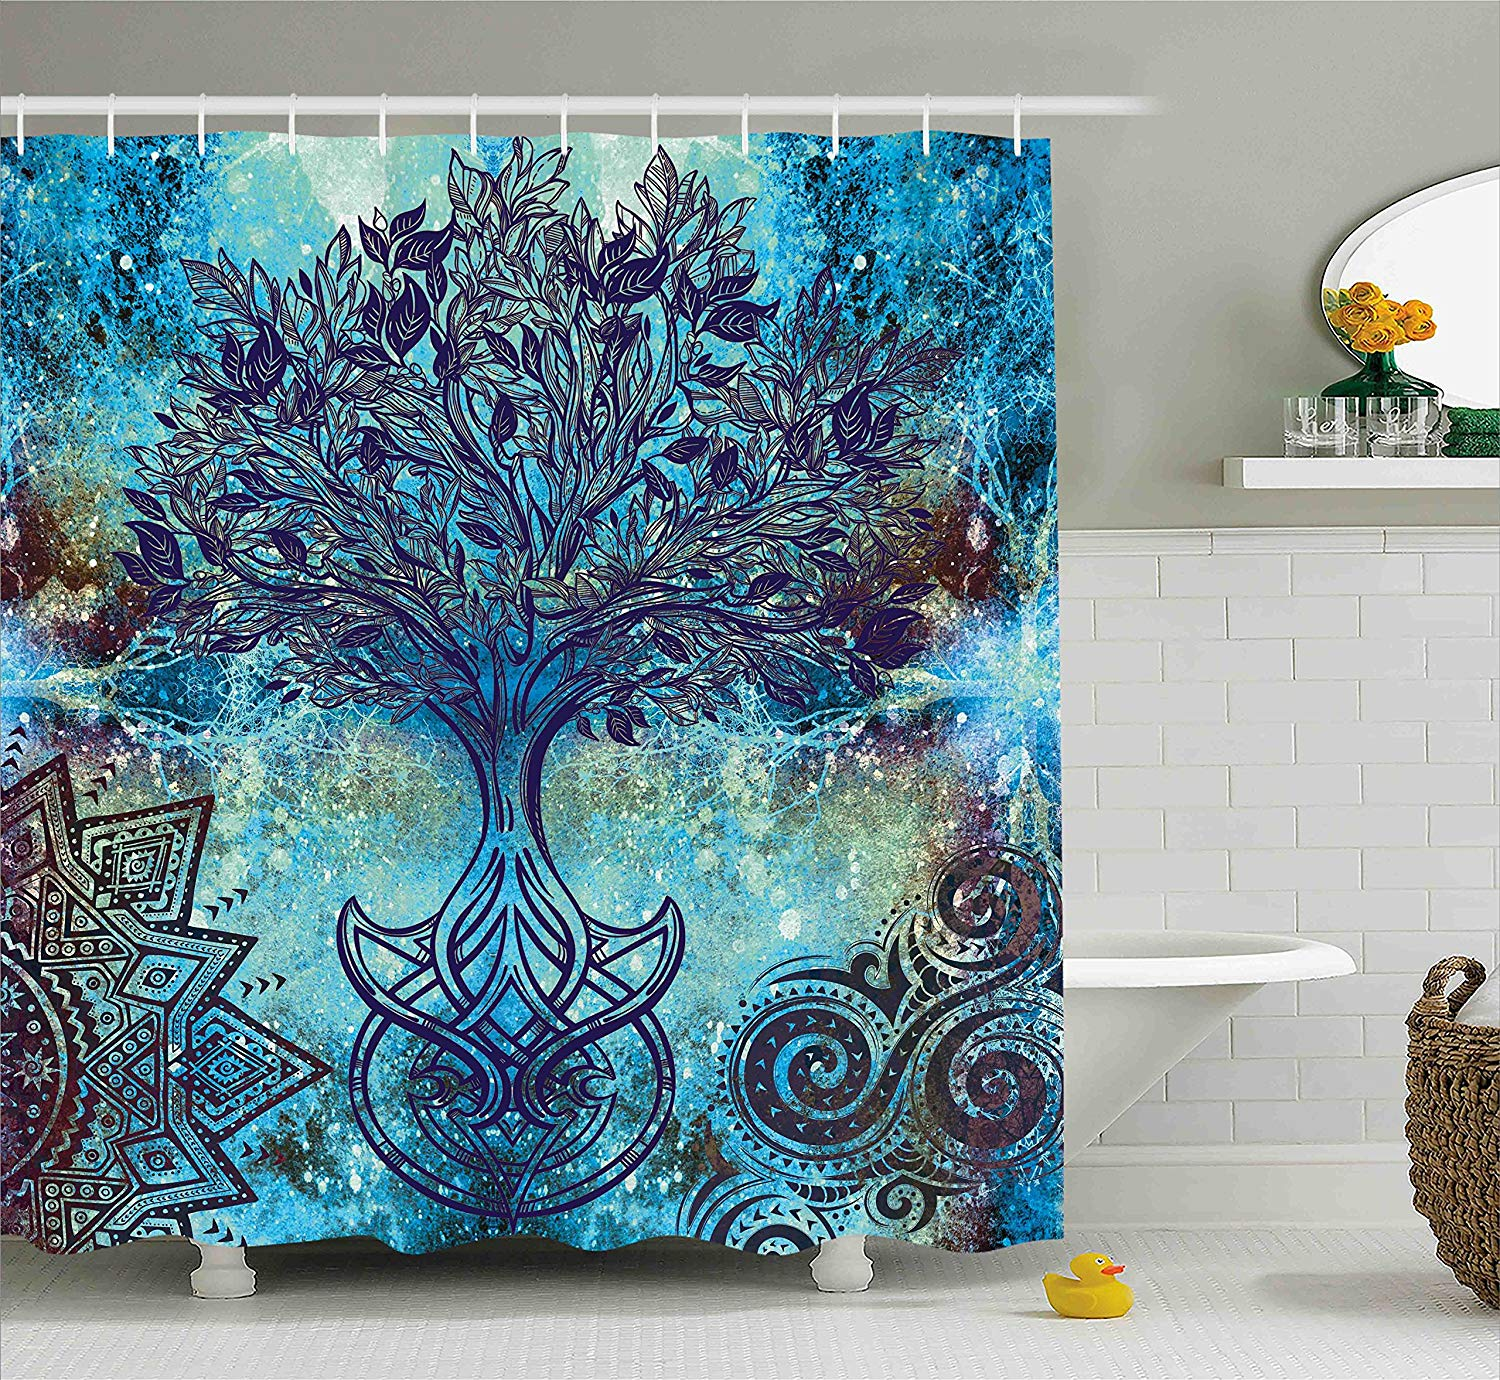 Ambesonne Ethnic Shower Curtain